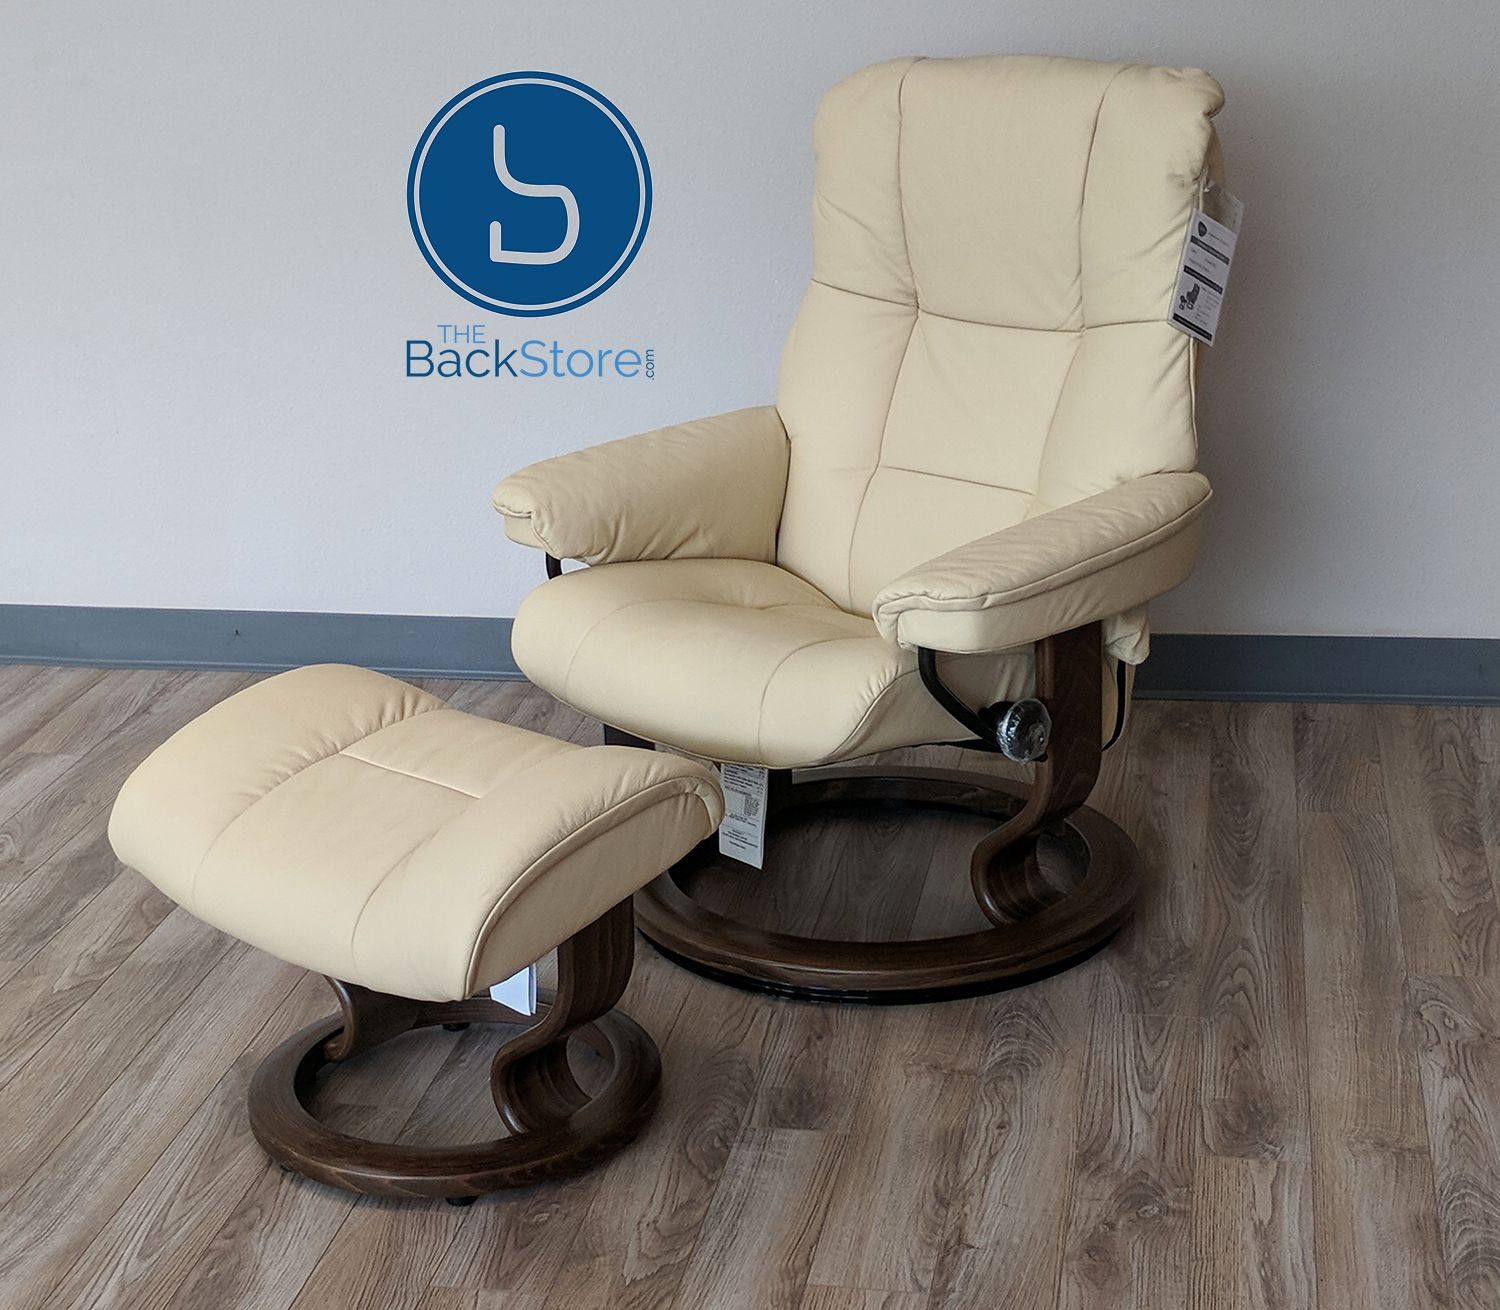 Stressless Recliners With Ottoman Stressless Mayfair Medium Recliner With Ottoman By Ekornes